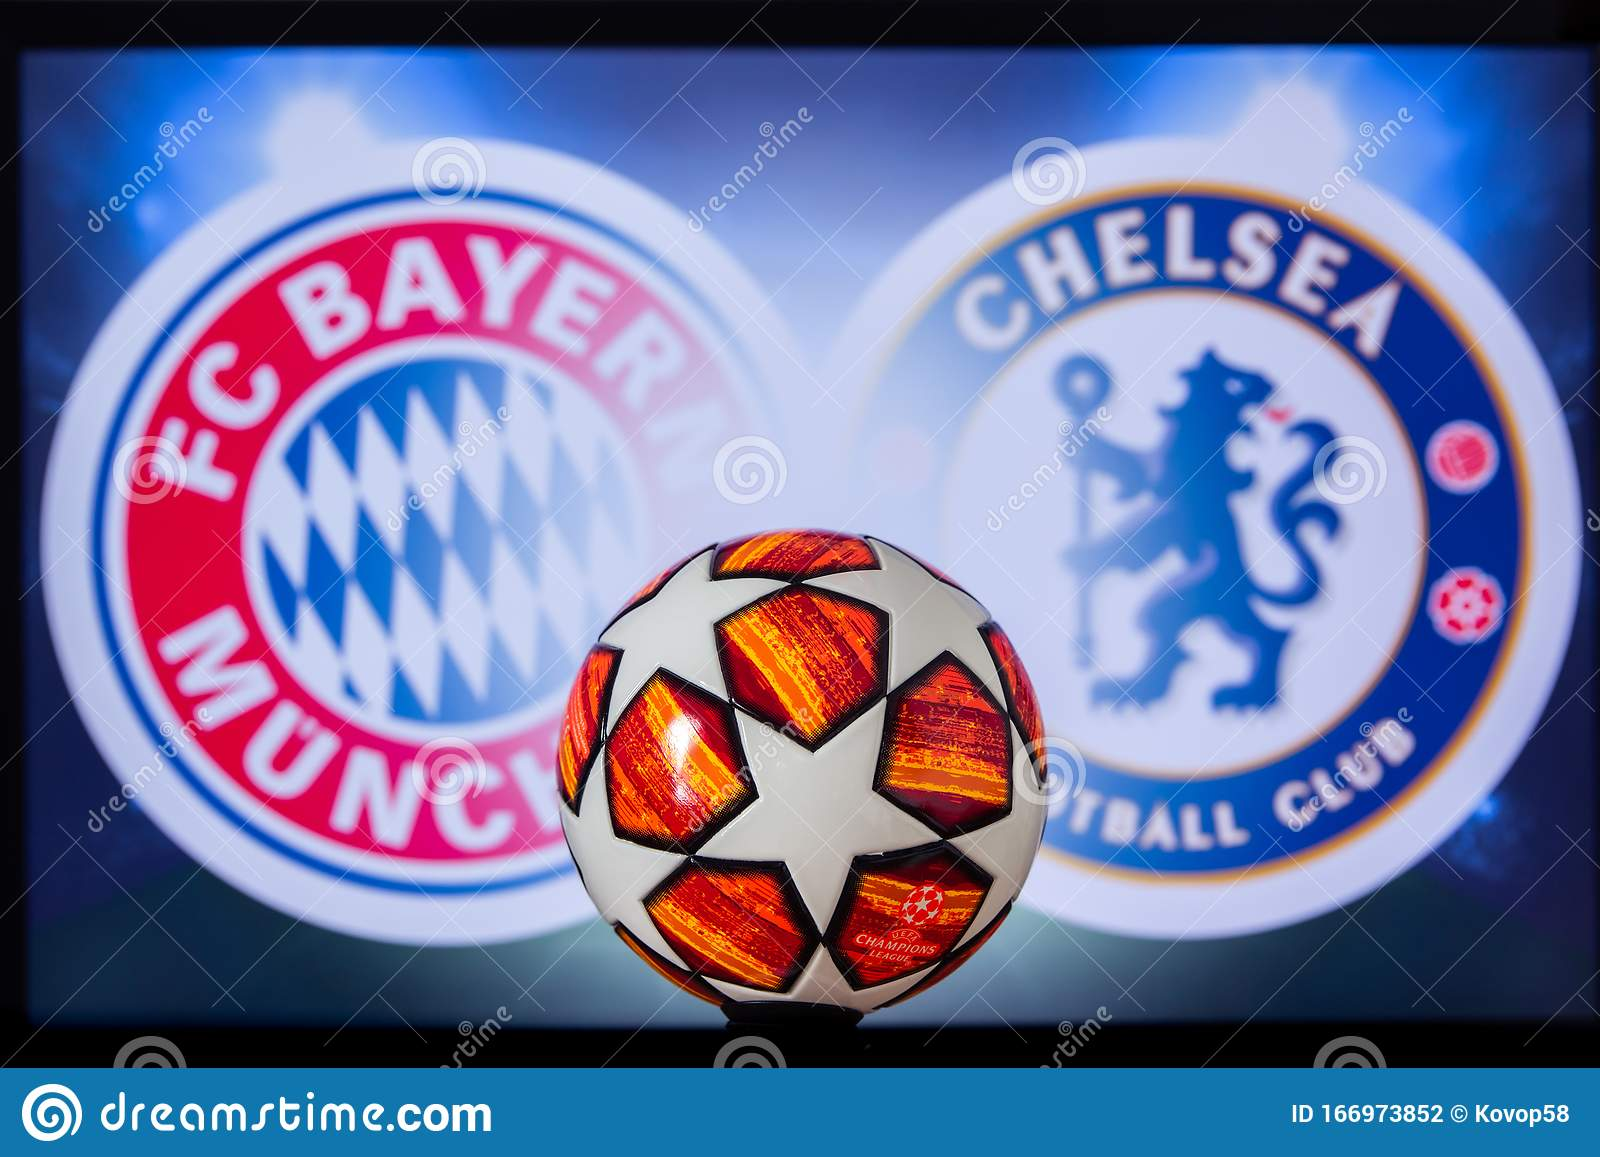 uefa champions league 2020 round of 16 ucl football knockout stage playoff official adidas soccer ball 2020 editorial photography image of broadcast icon 166973852 https www dreamstime com uefa champions league round ucl football knockout stage playoff official adidas soccer ball image166973852